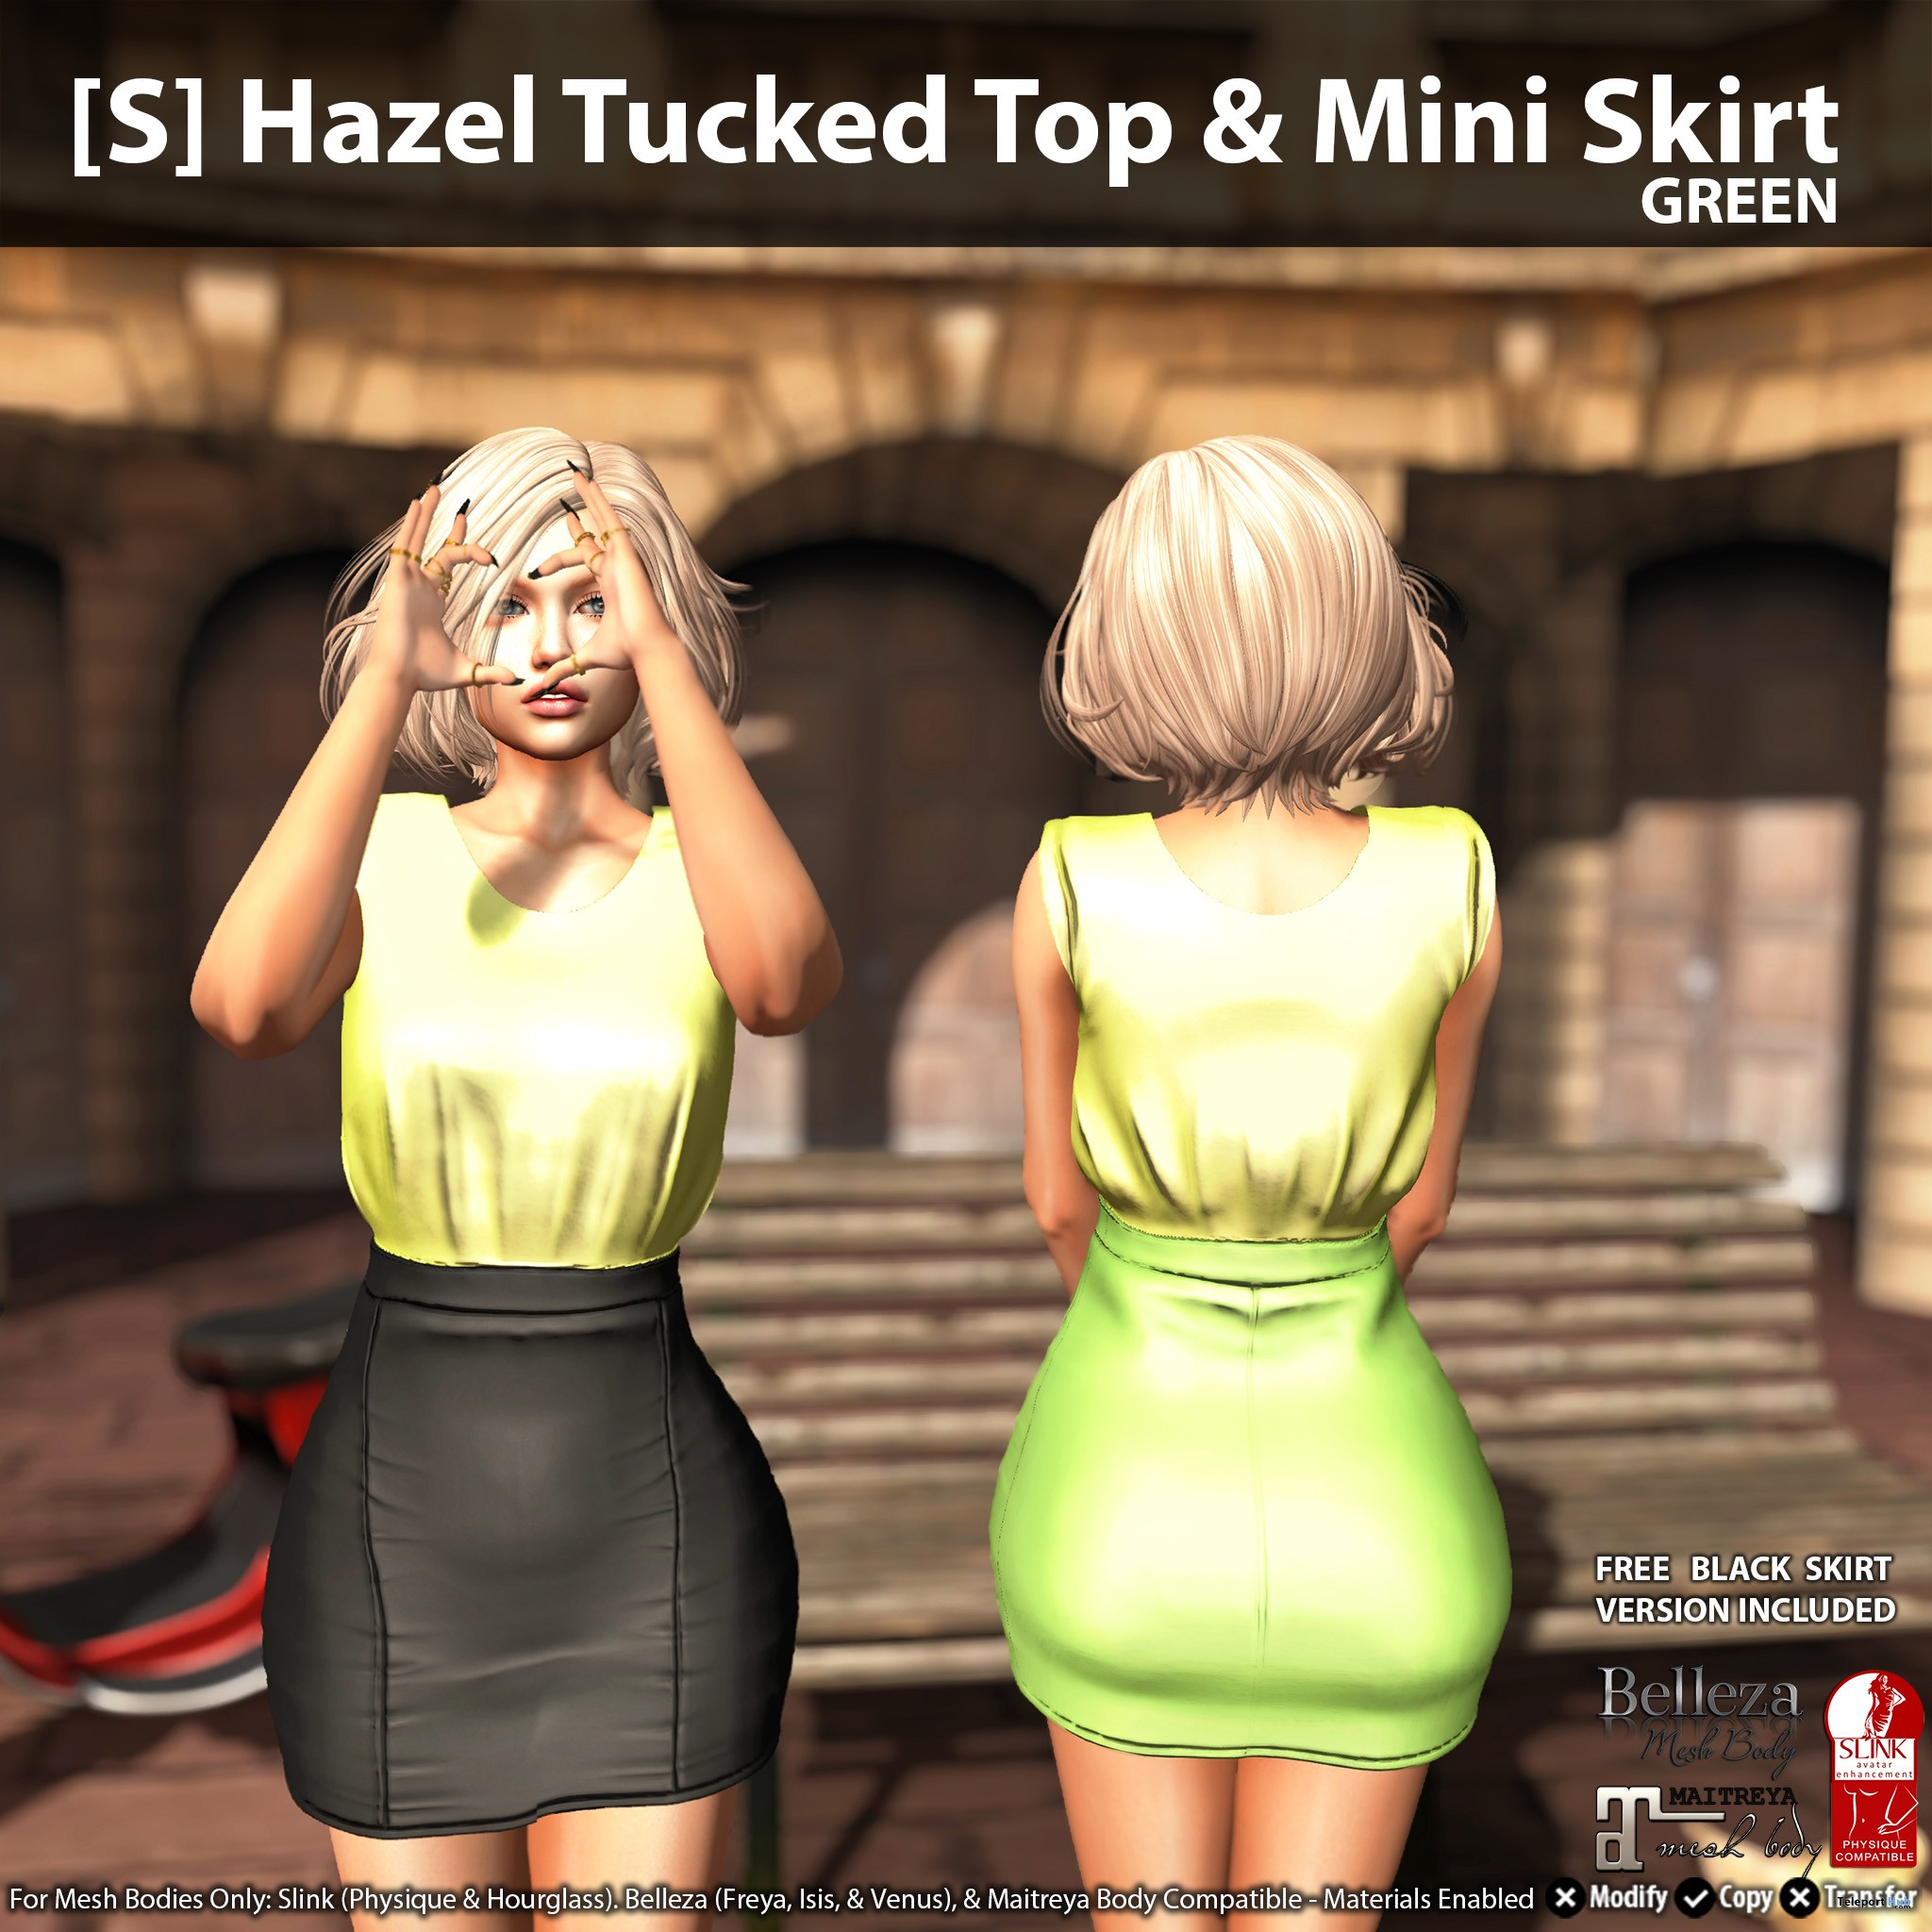 New Release: [S] Hazel Tucked Top & Mini Skirt by [satus Inc] - Teleport Hub - teleporthub.com